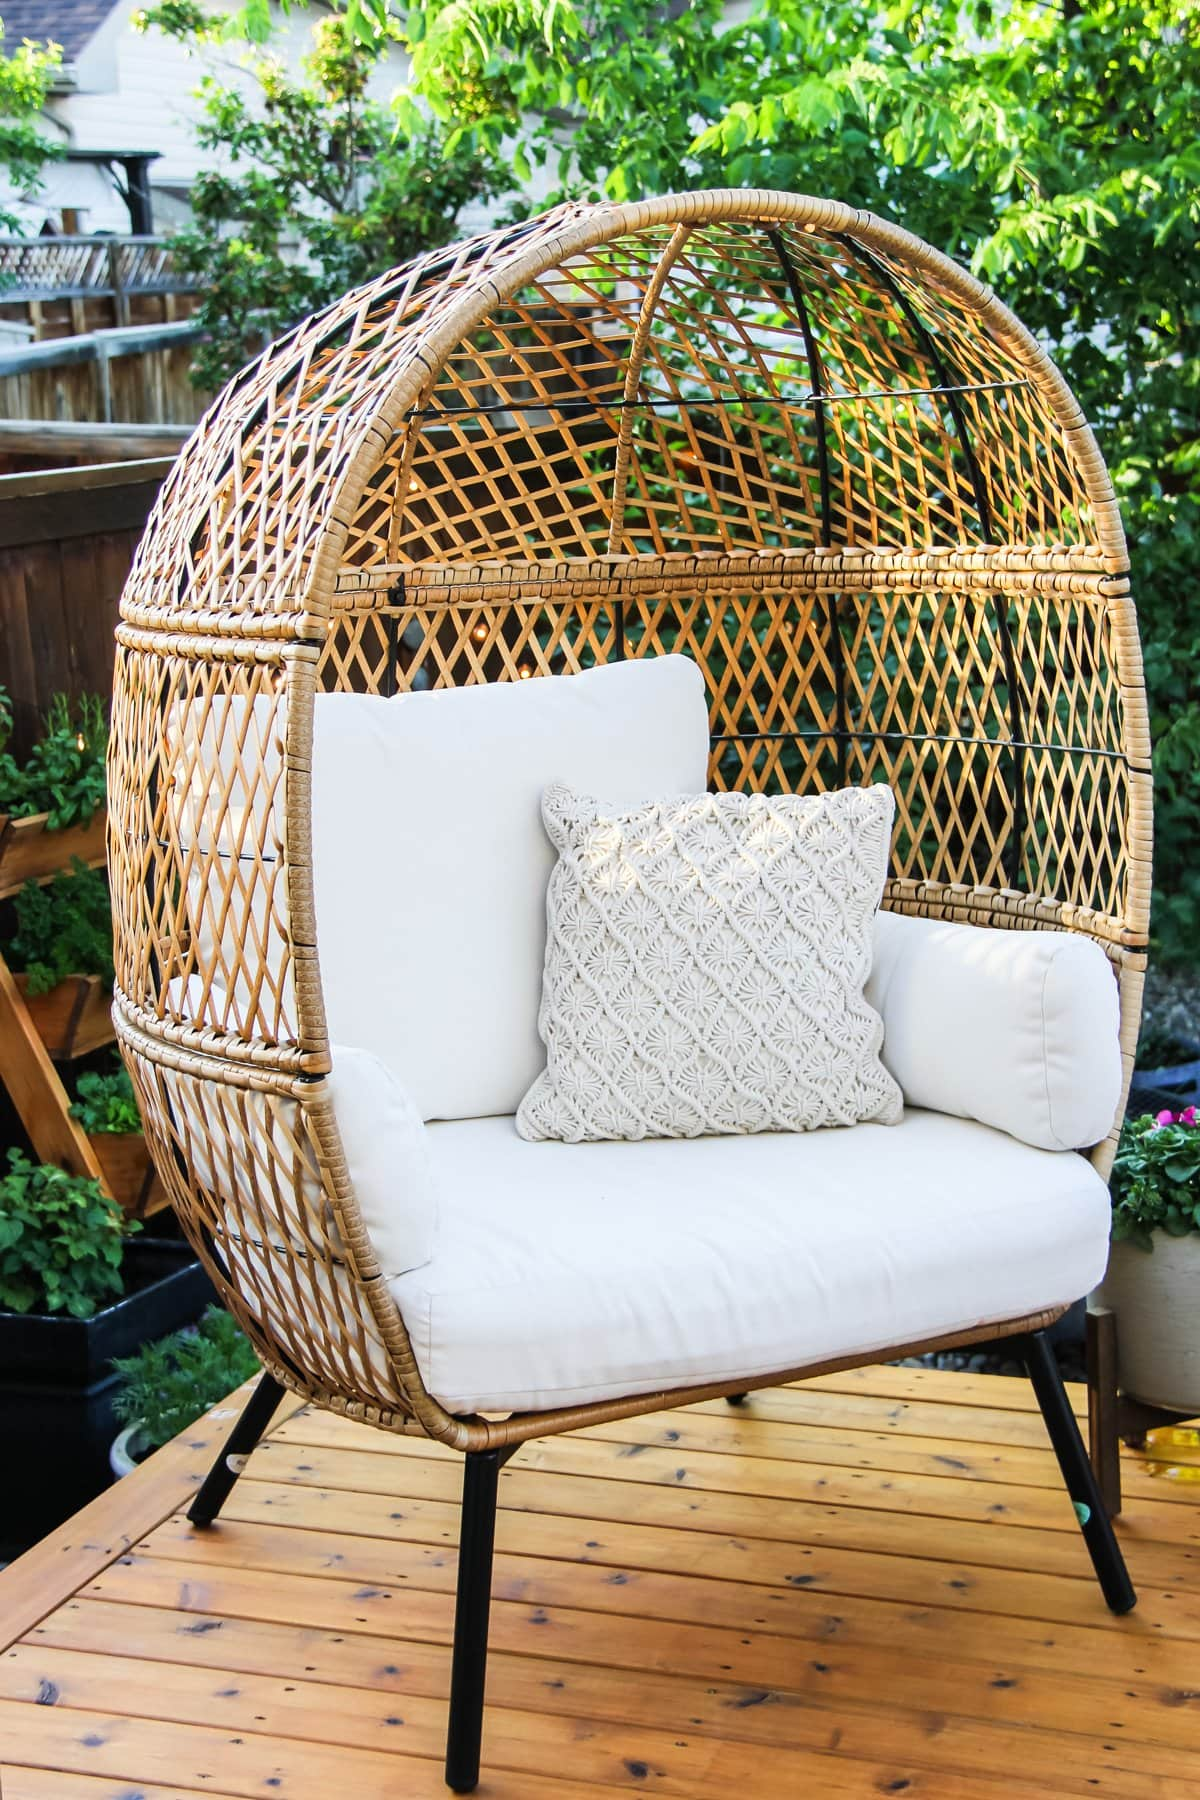 a wicker egg chair on a summer deck. in the background are trees